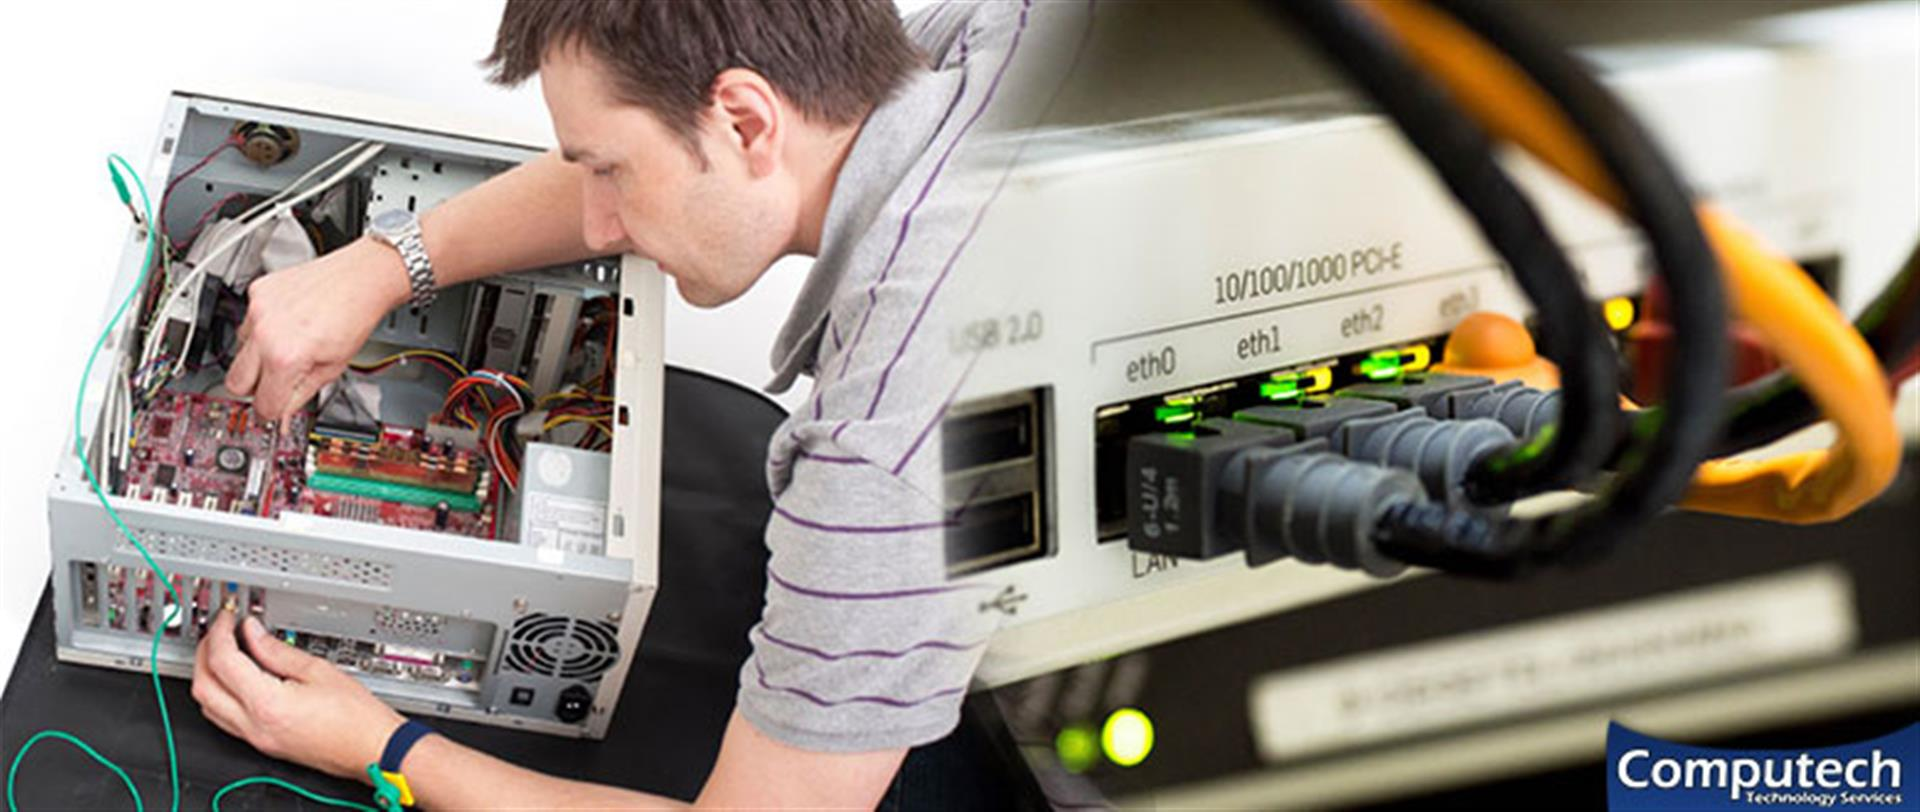 Superior Arizona On Site Computer & Printer Repairs, Network, Telecom Voice and Data Low Voltage Cabling Services